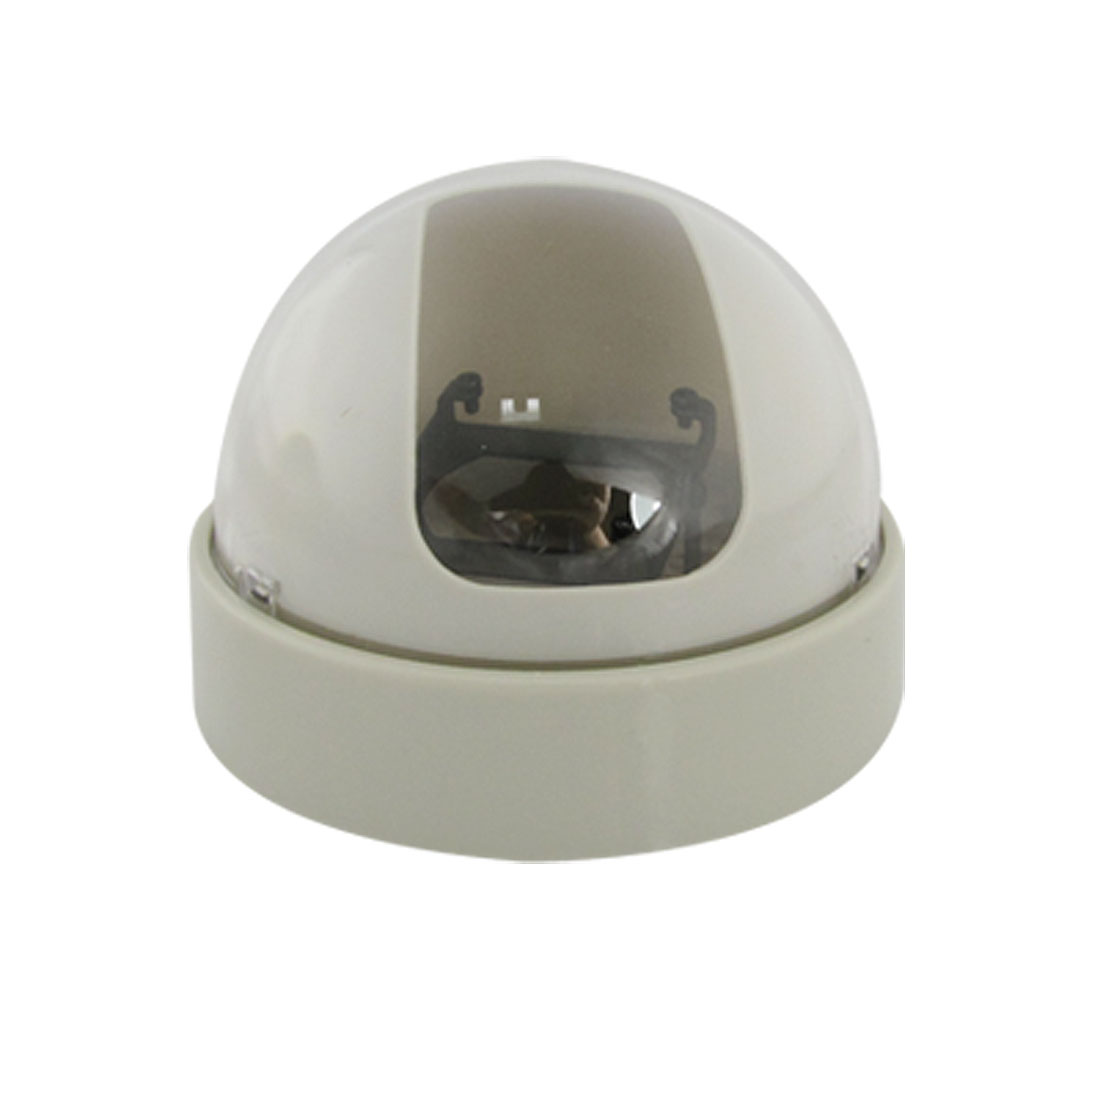 Security CCTV Camera Plastic Dome Shell Housing